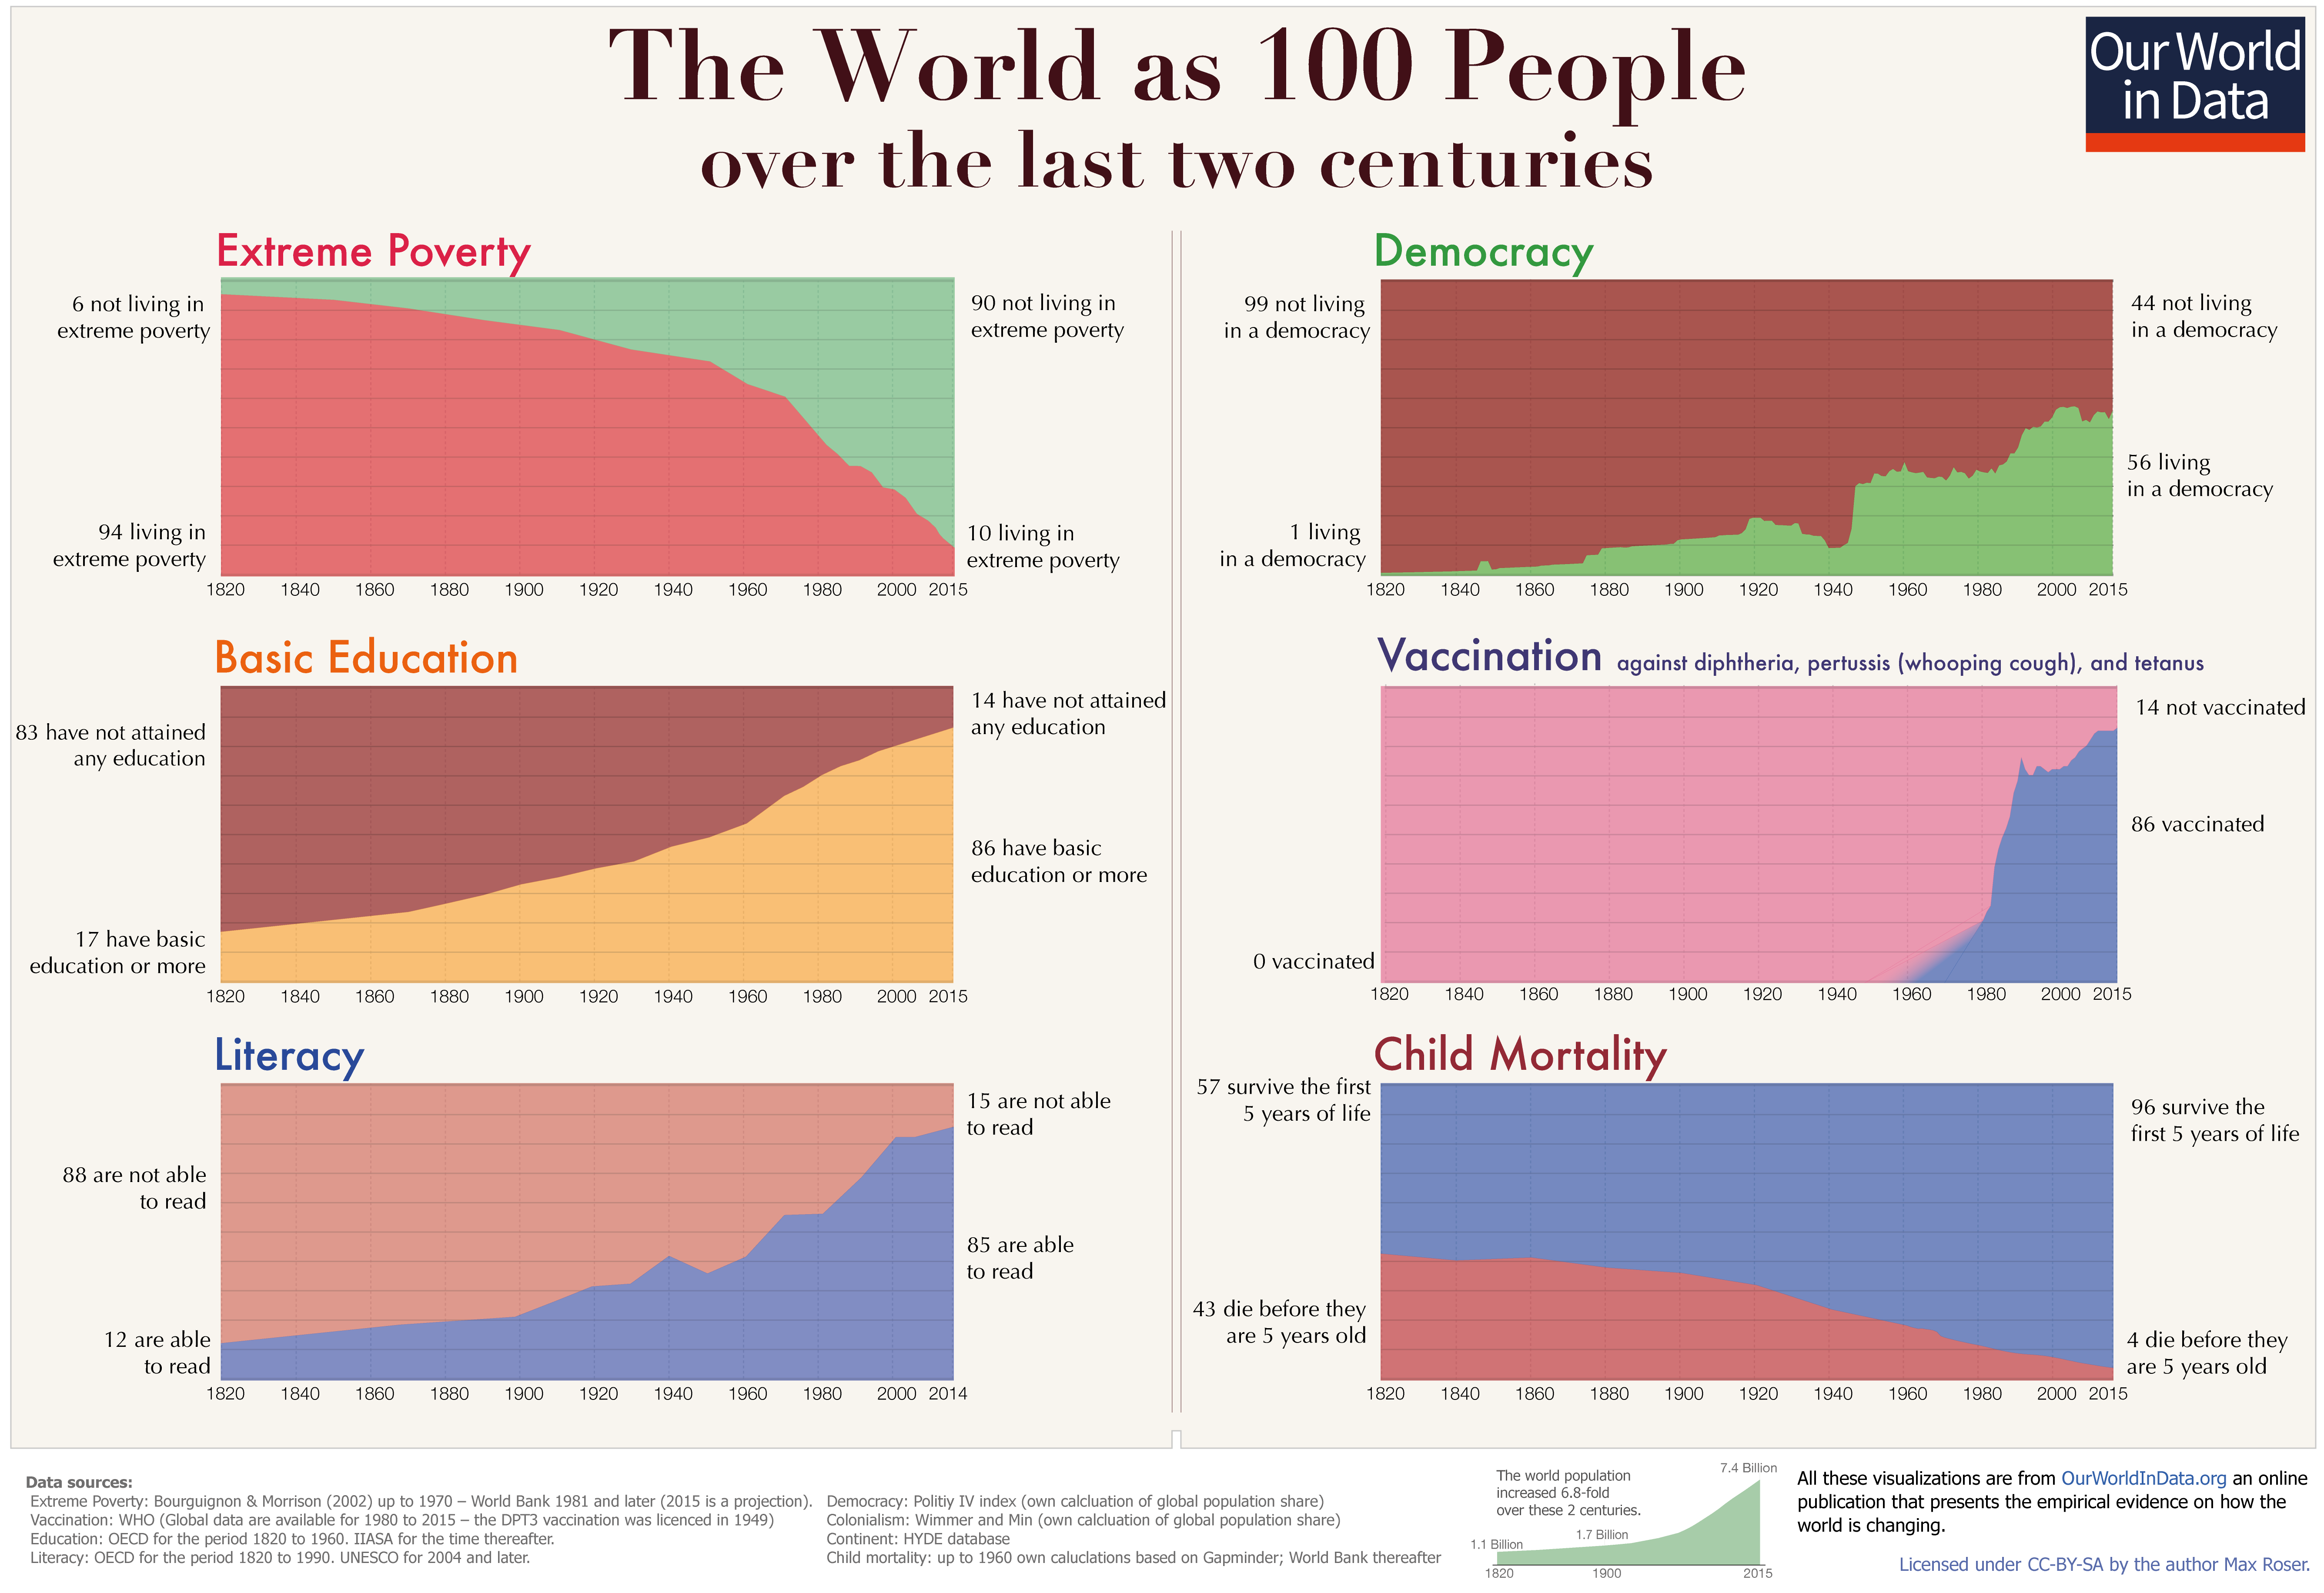 DataViz Weekly: Interesting charts of history of global living conditions